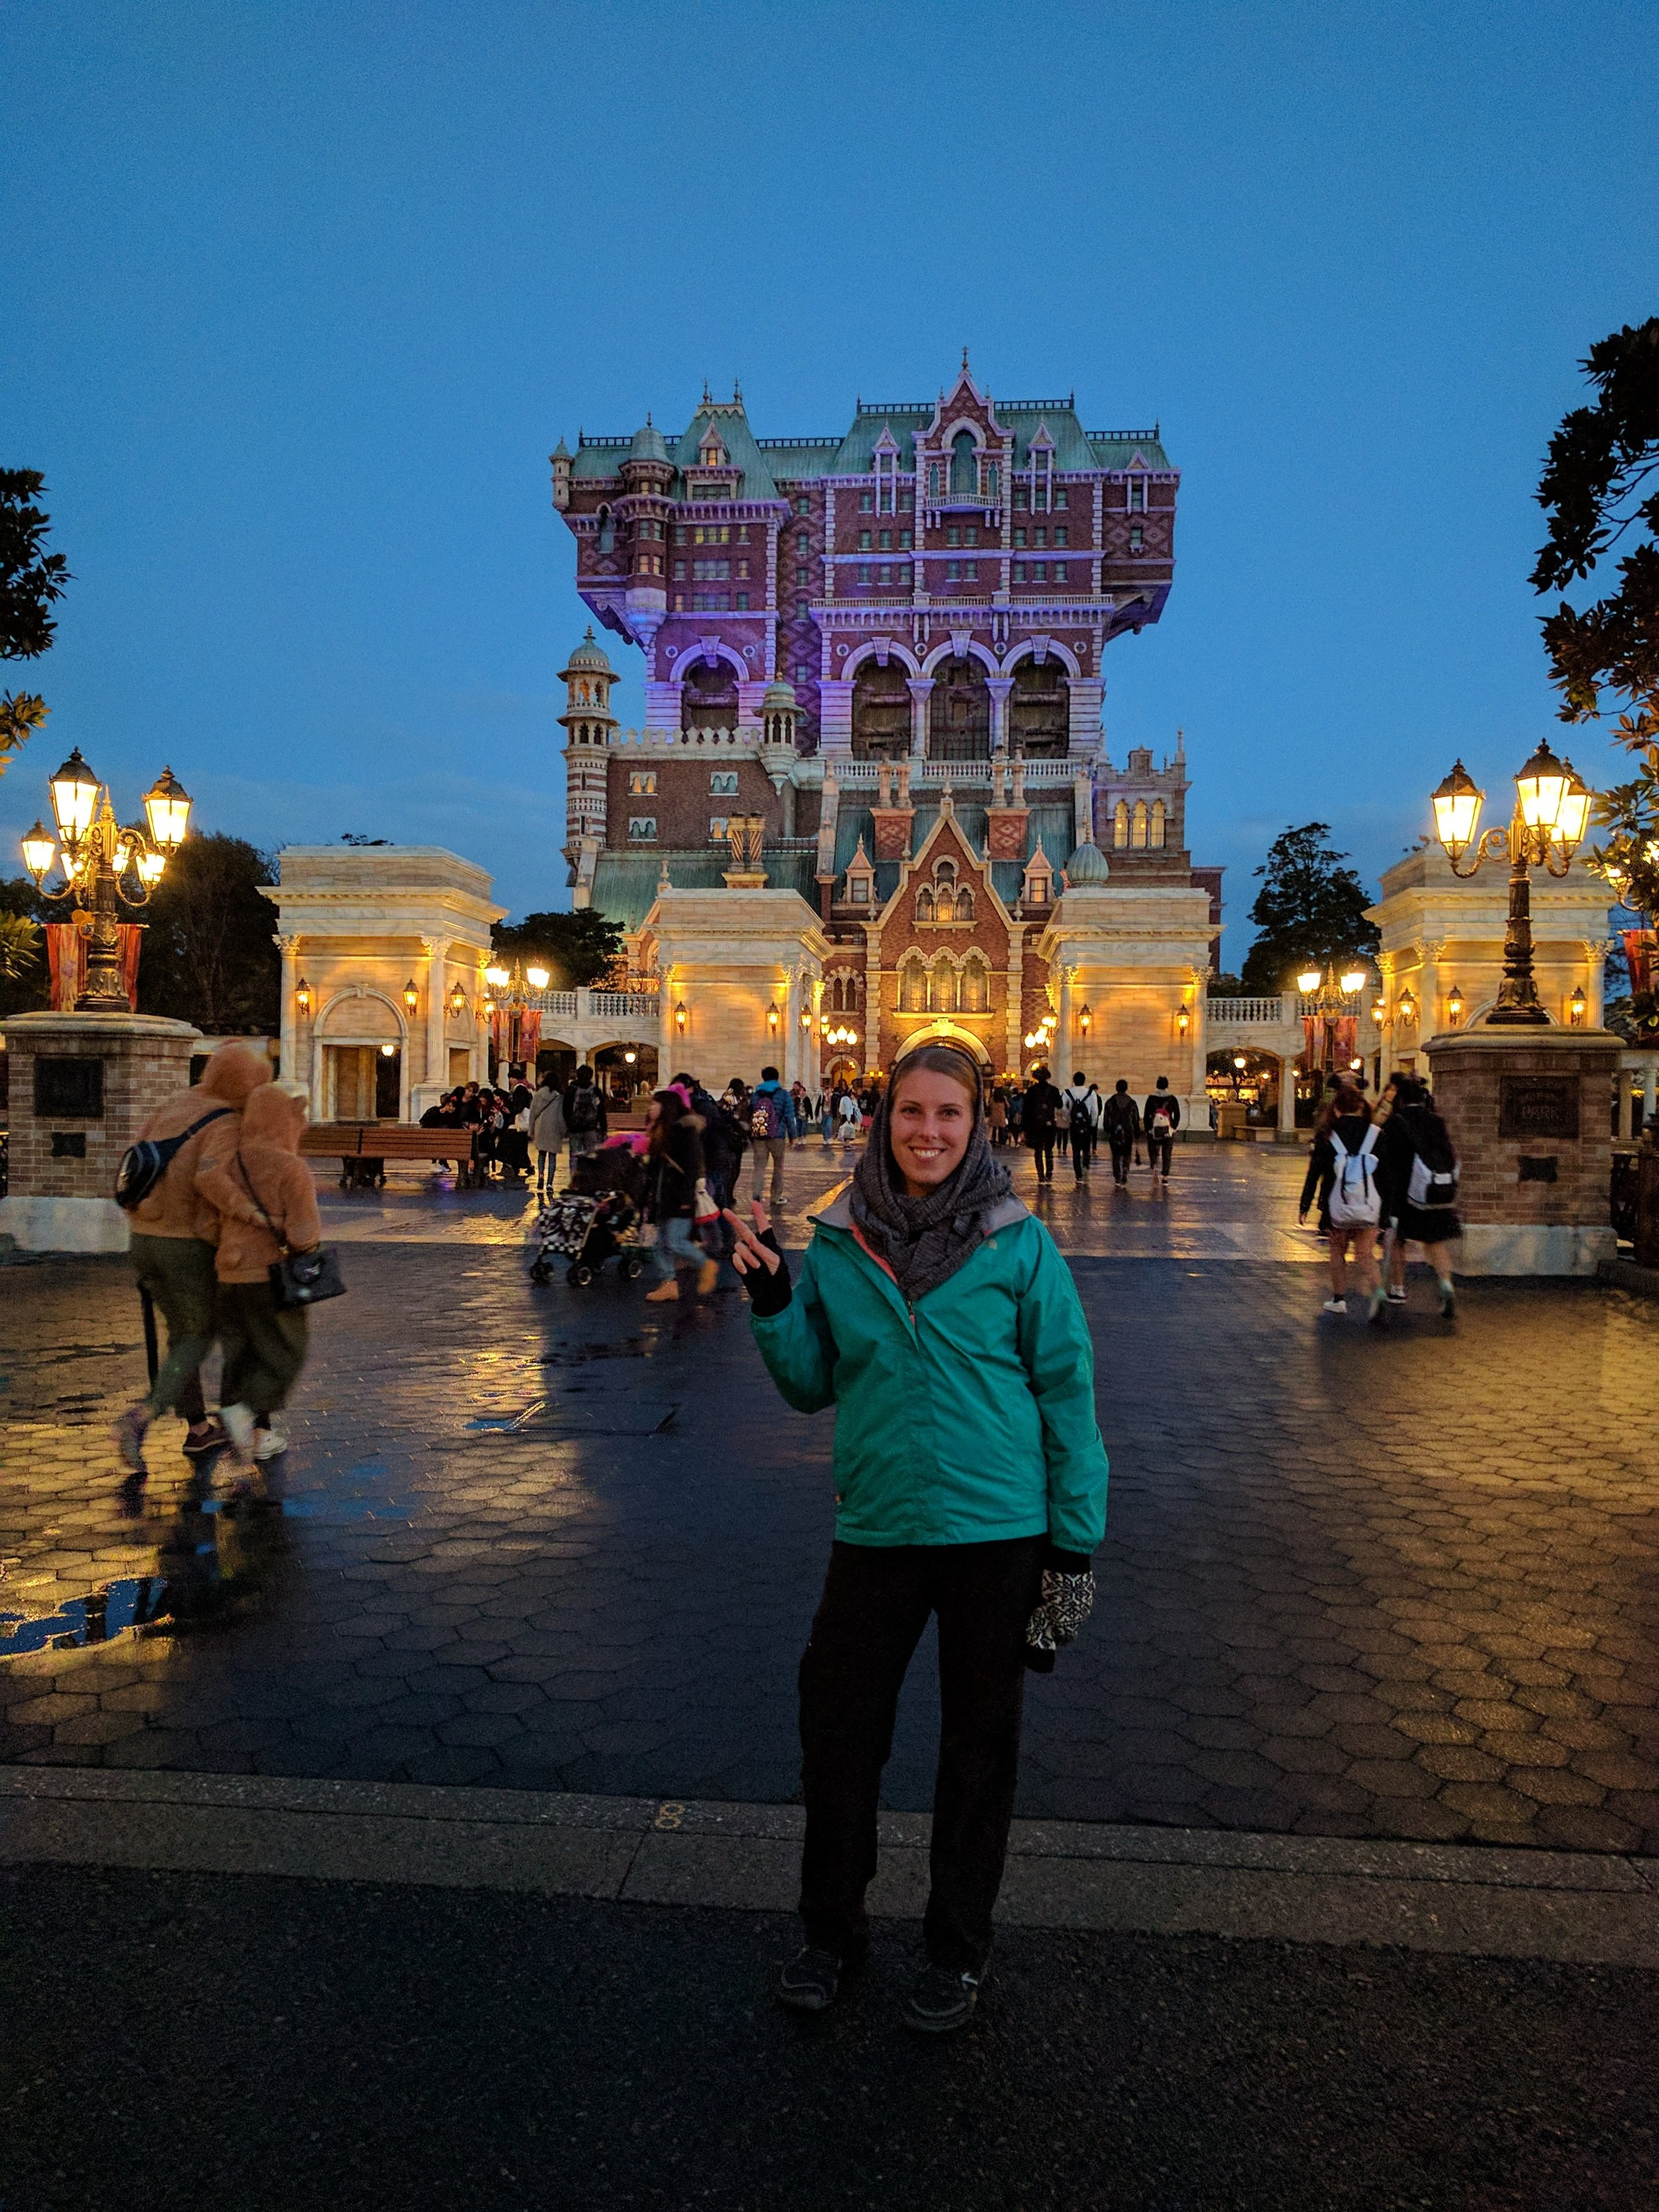 In front of the Tower of Terror, with a proper peace sign